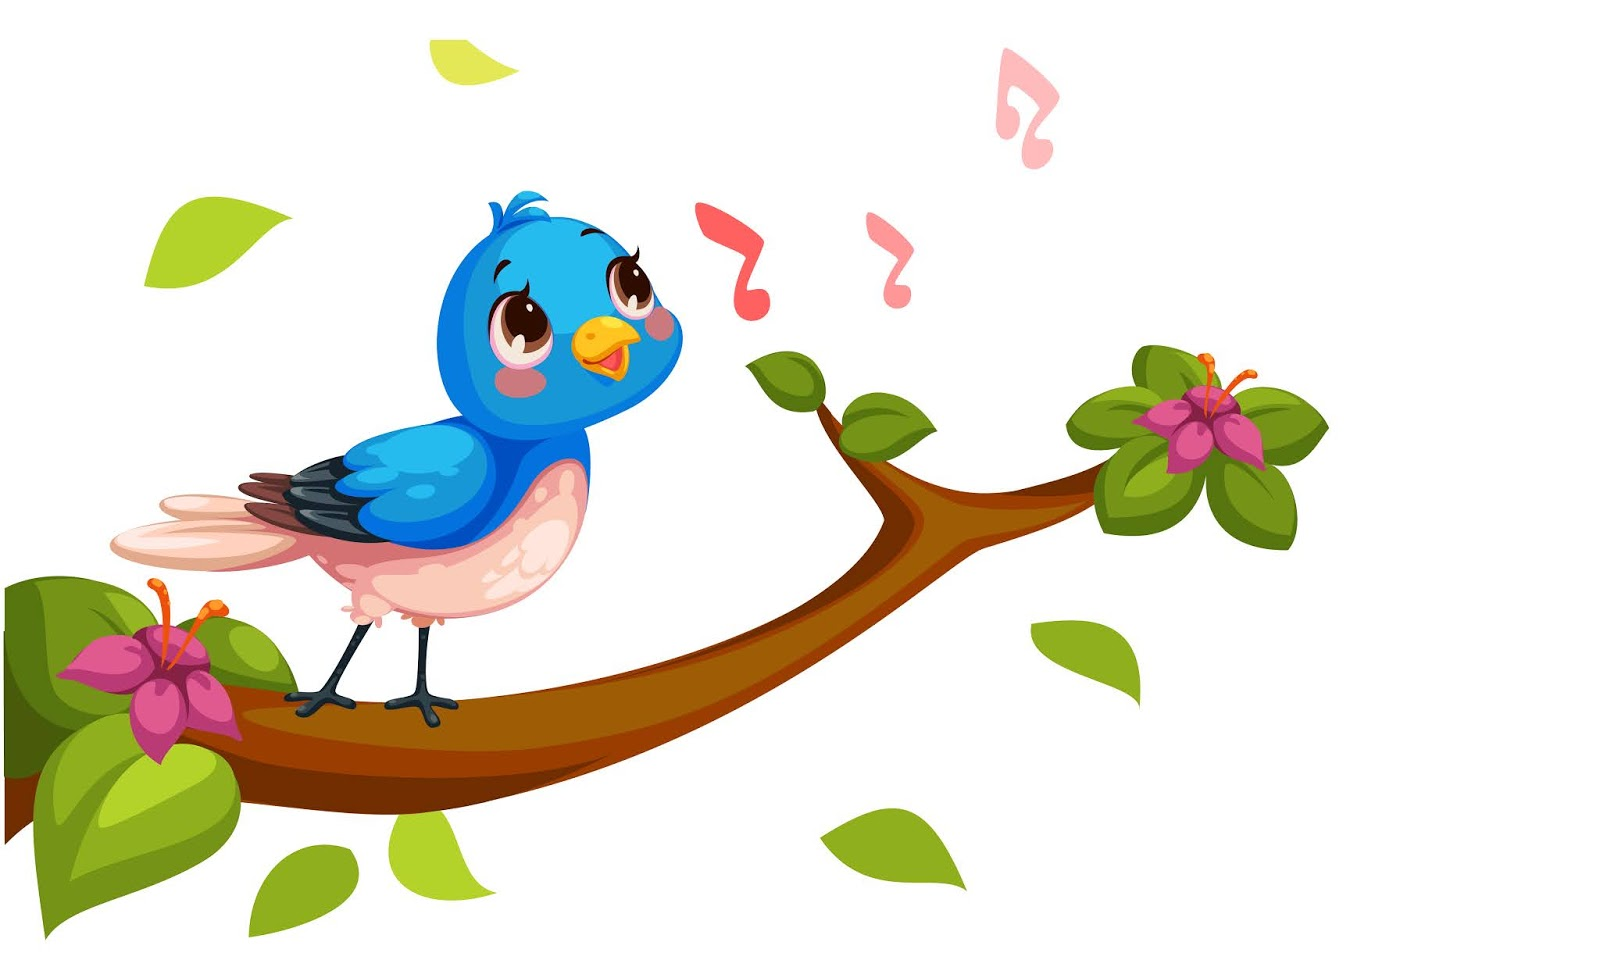 Cute Nightingale Singing Cartoon Vector Free Download Vector CDR, AI, EPS and PNG Formats